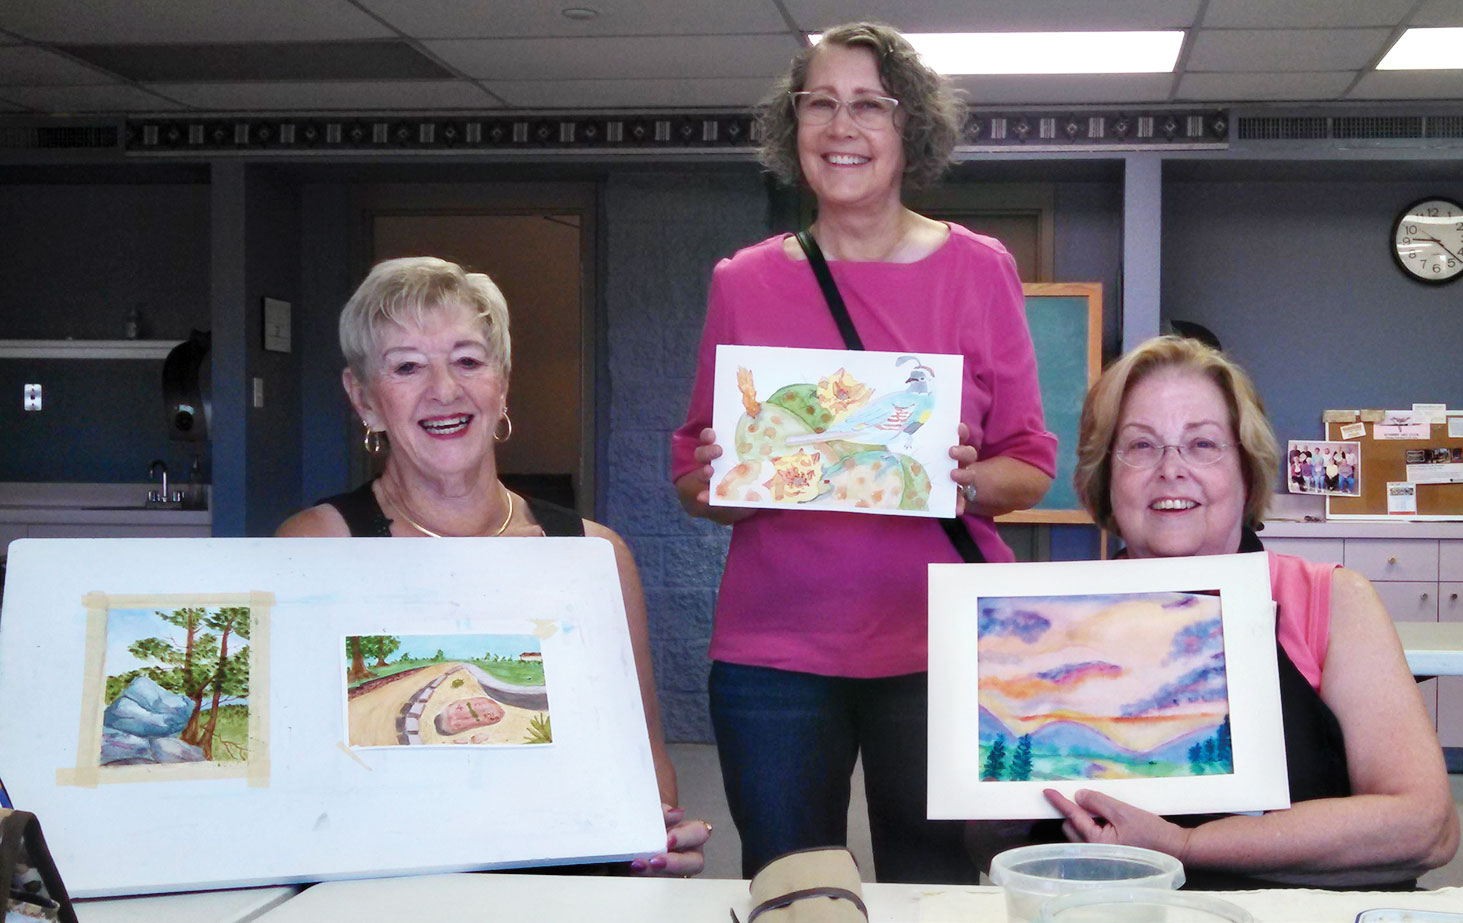 Jean Pritchard, Janice Sparks and Judy Ramberger are shown with watercolors completed later in the year. Notice their exciting use of color. Jean Pritchard, Janice Sparks and Judy Ramberger are shown with watercolors completed later in the year. Notice their exciting use of color.